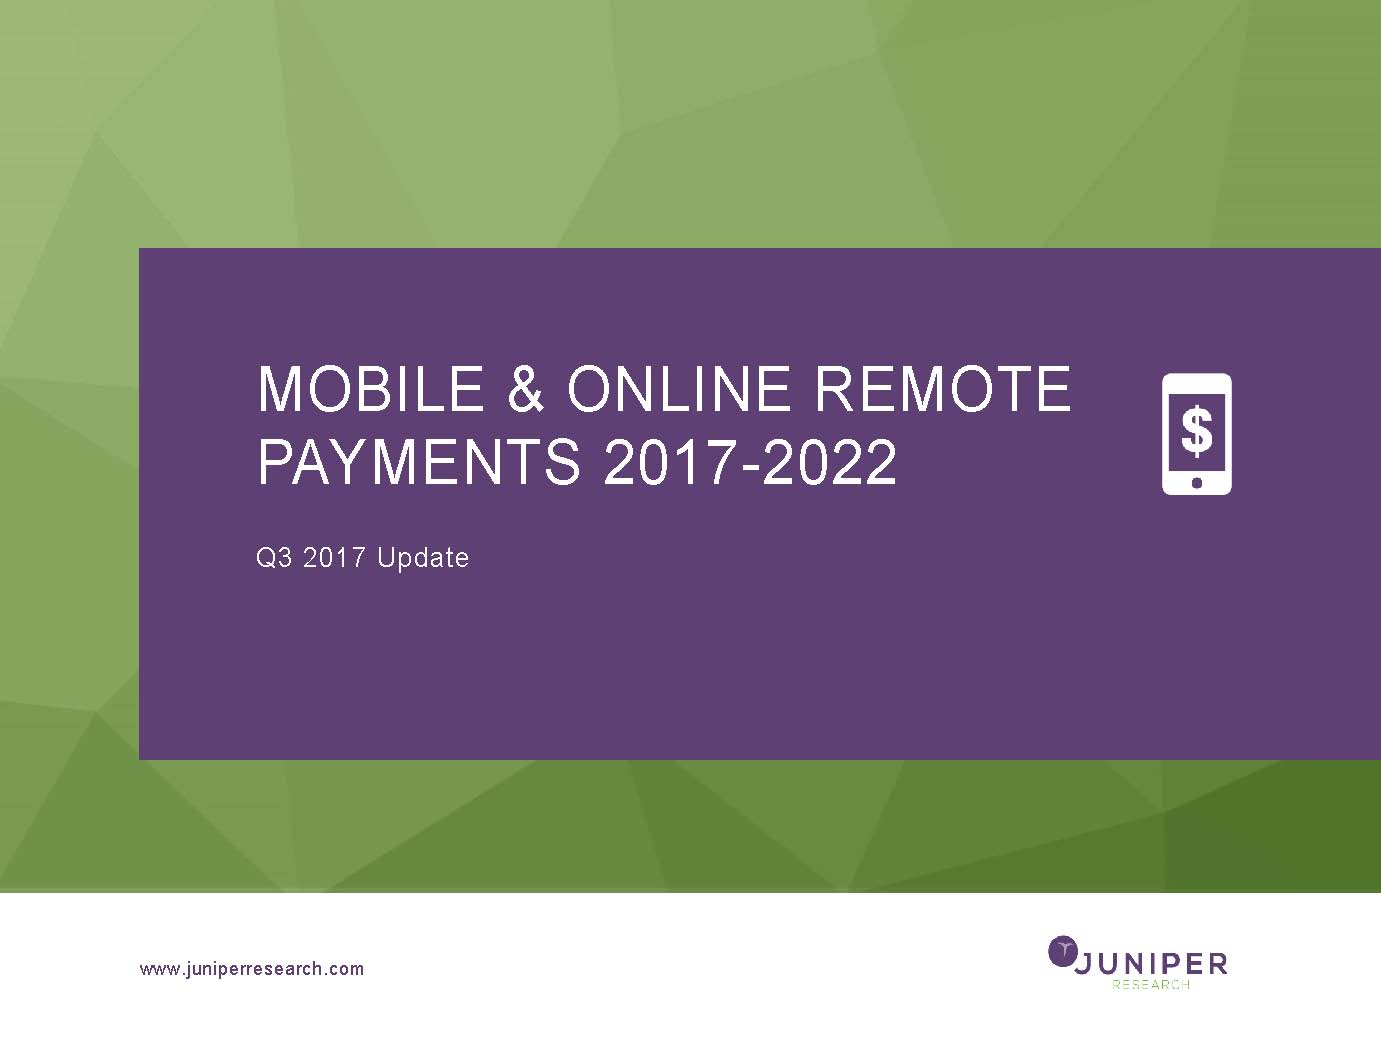 Mobile & Online Purchases - Q3 2017